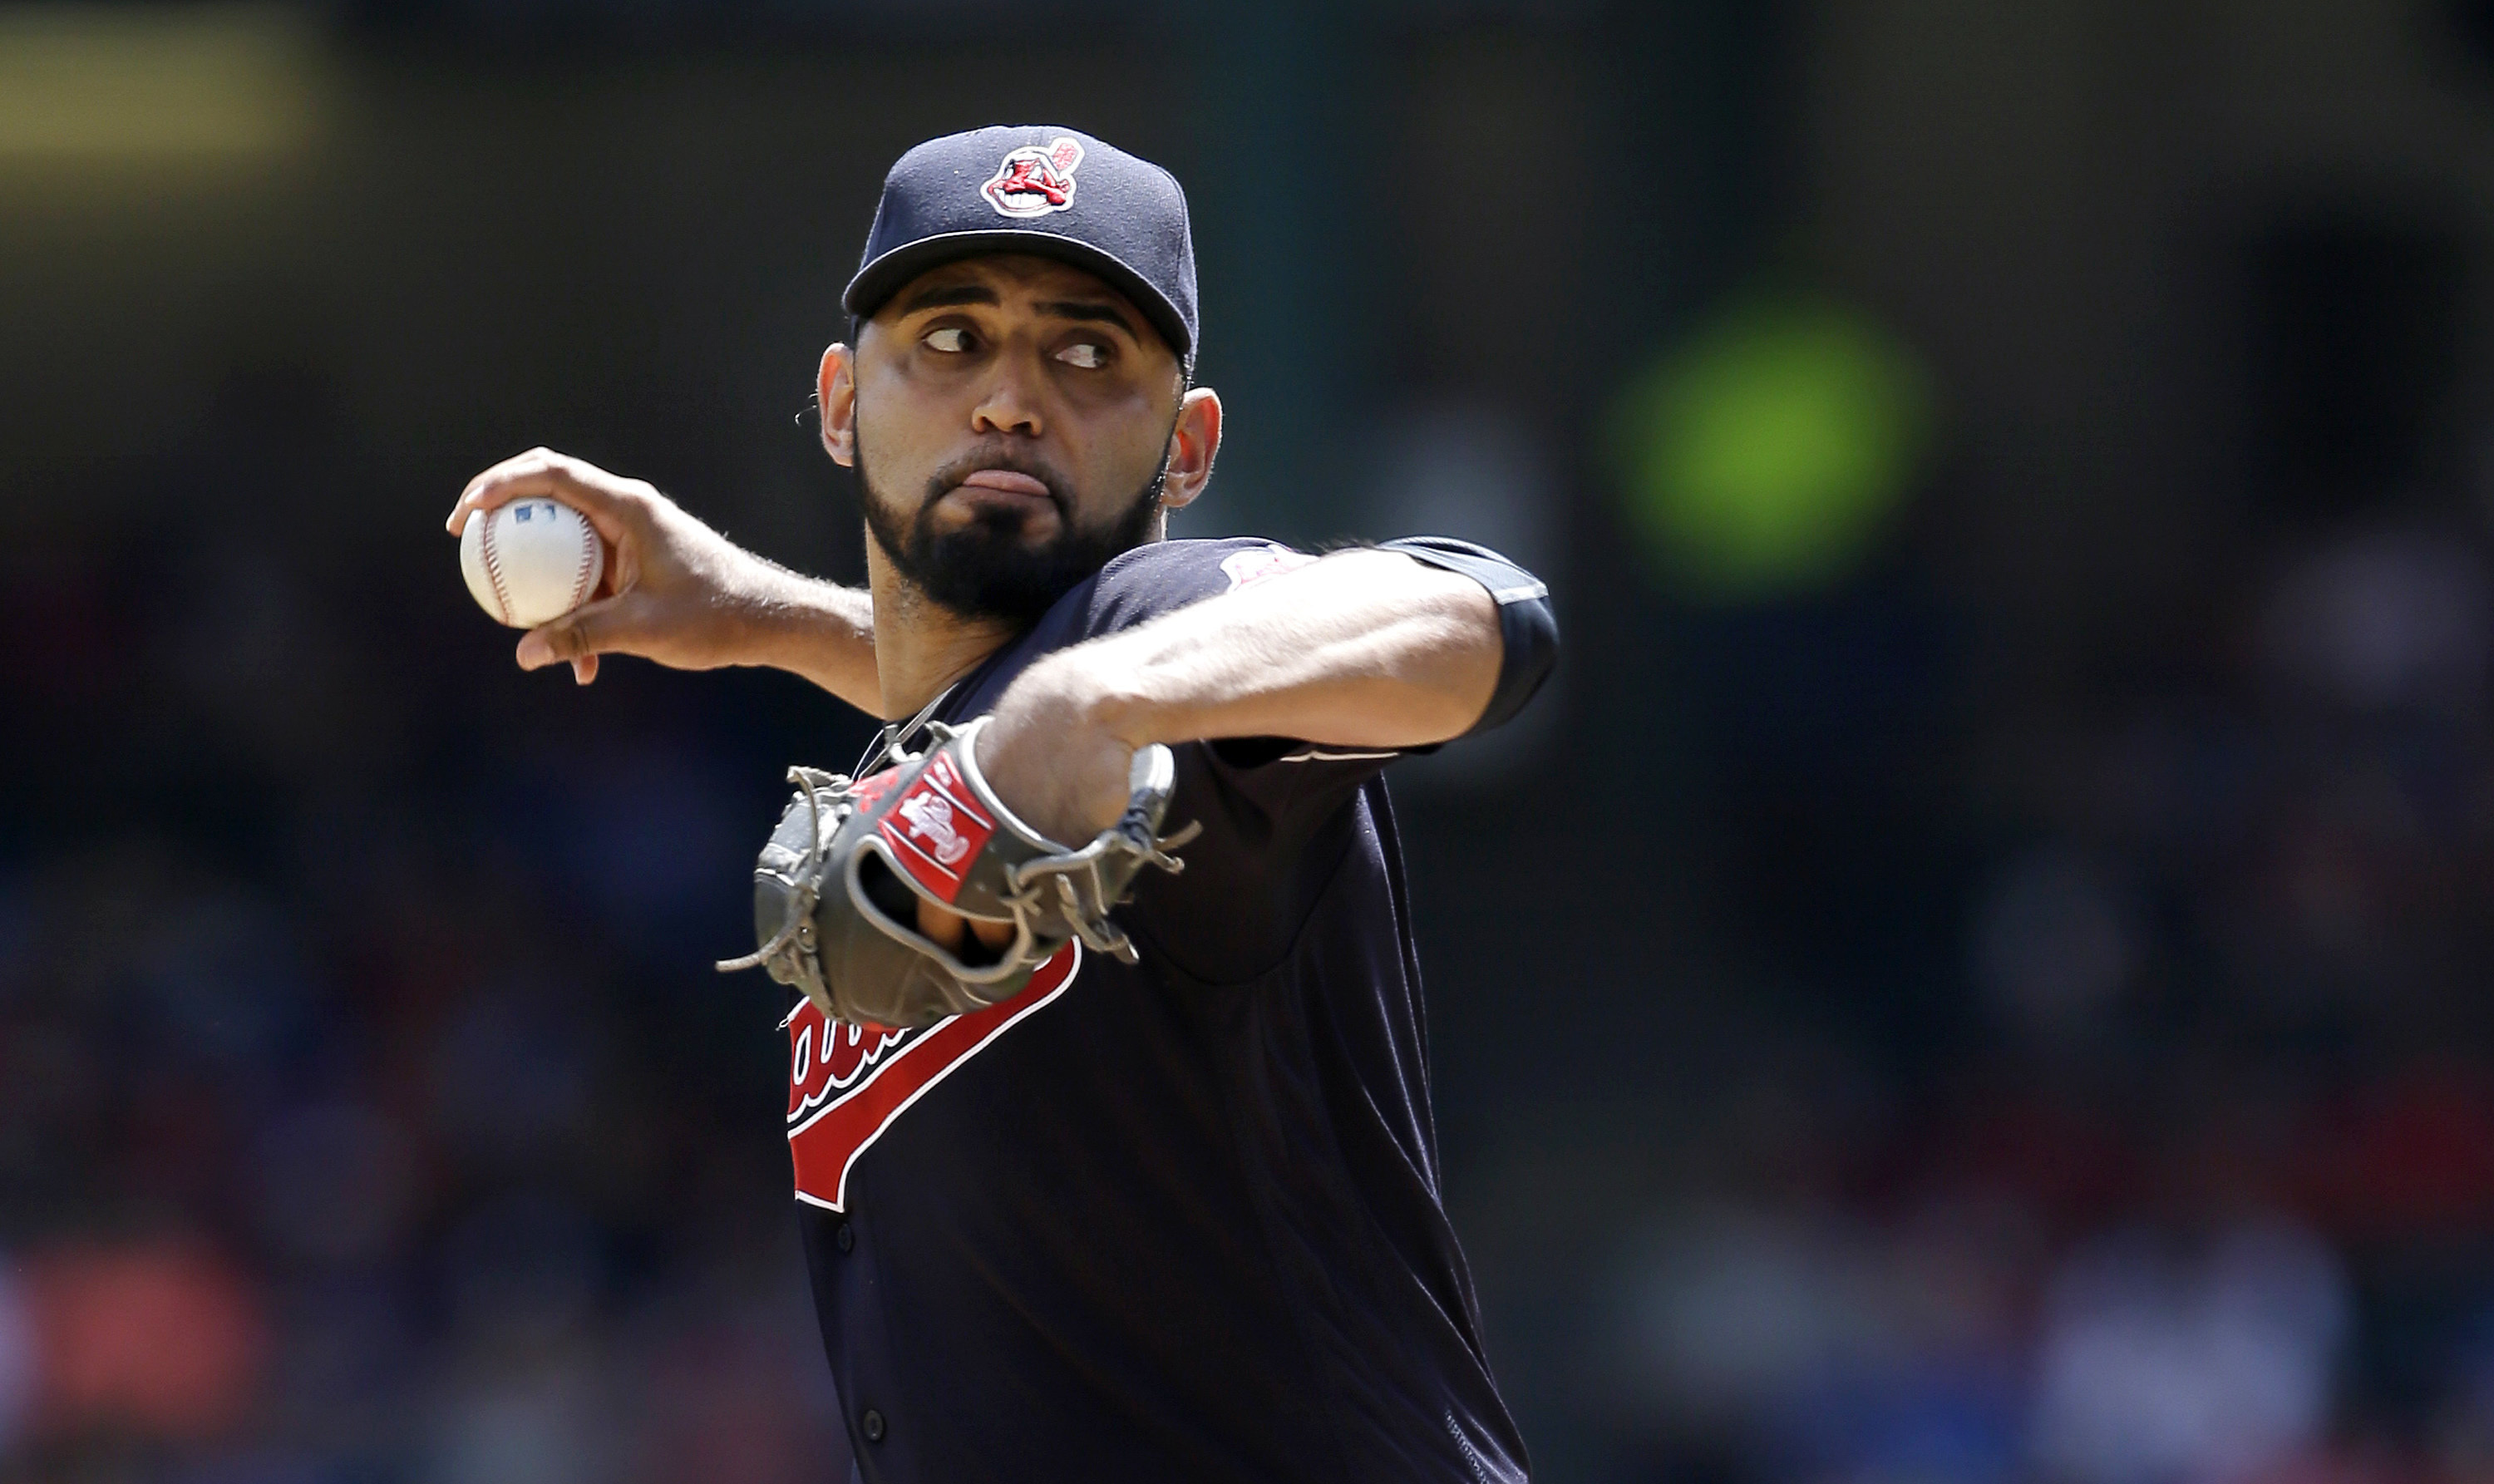 Cleveland Indians starting pitcher Danny Salazar throws during the first inning of a baseball game against the Texas Rangers in Arlington, Texas, Sunday, Aug. 28, 2016. (AP Photo/LM Otero)